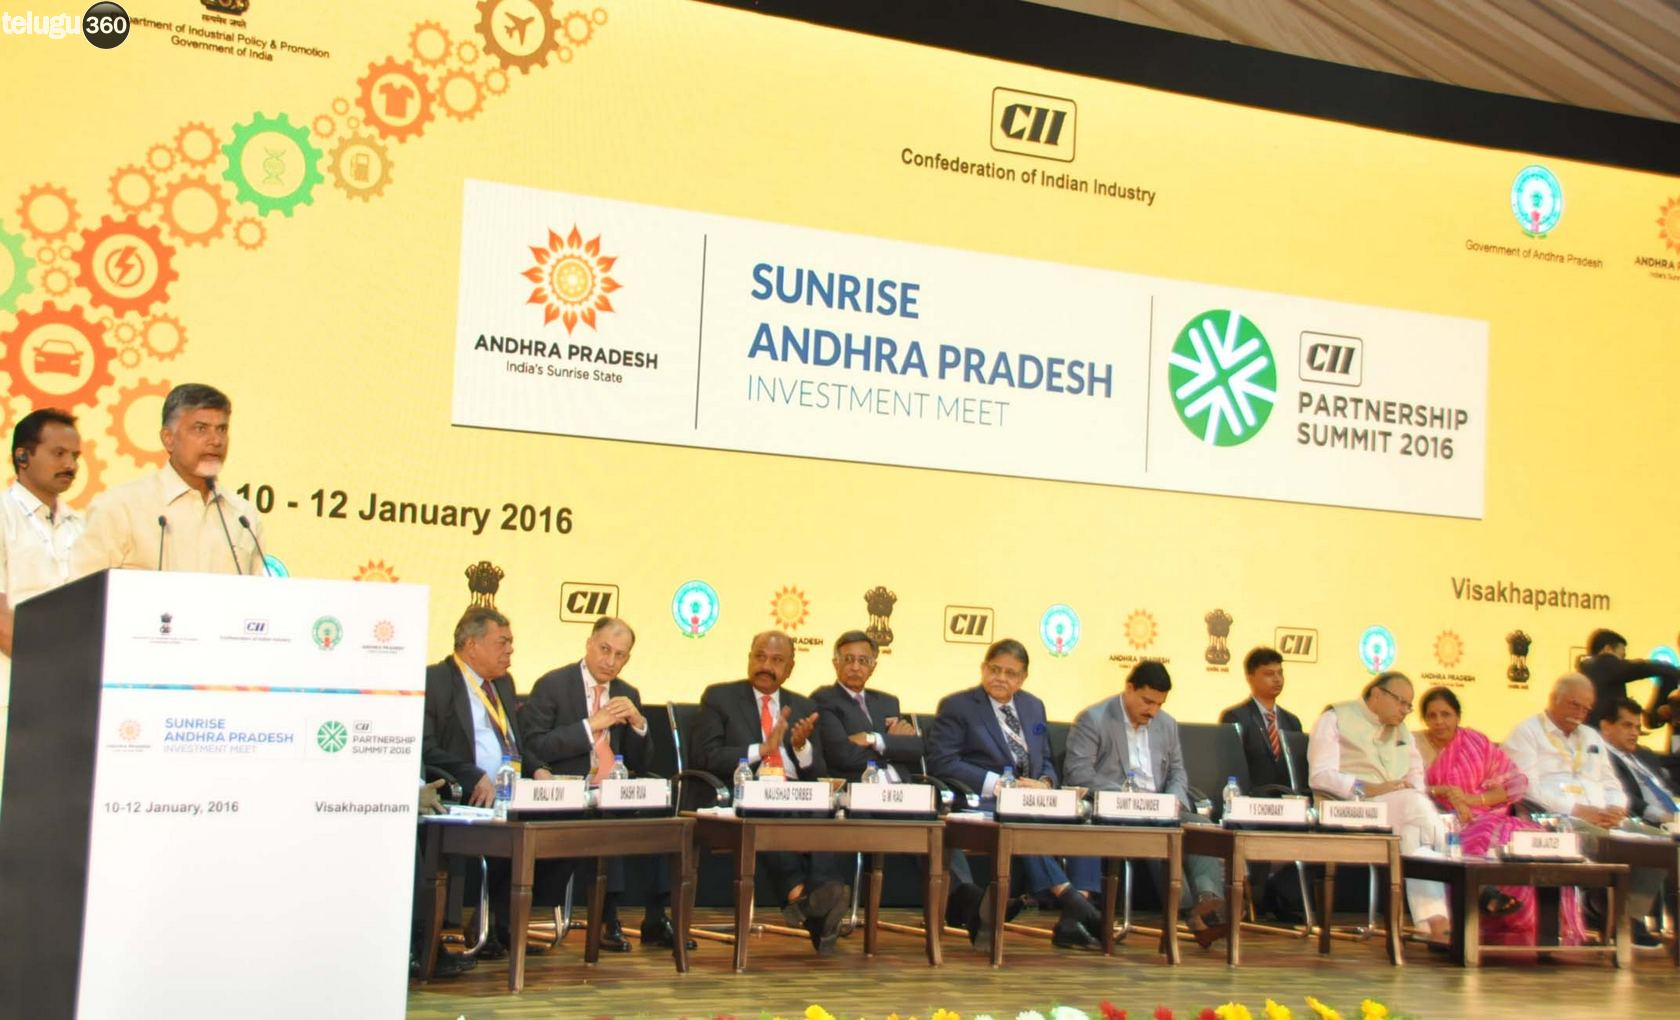 MOUs for Huge investments in AP through partnership summit-2016 in Vizag